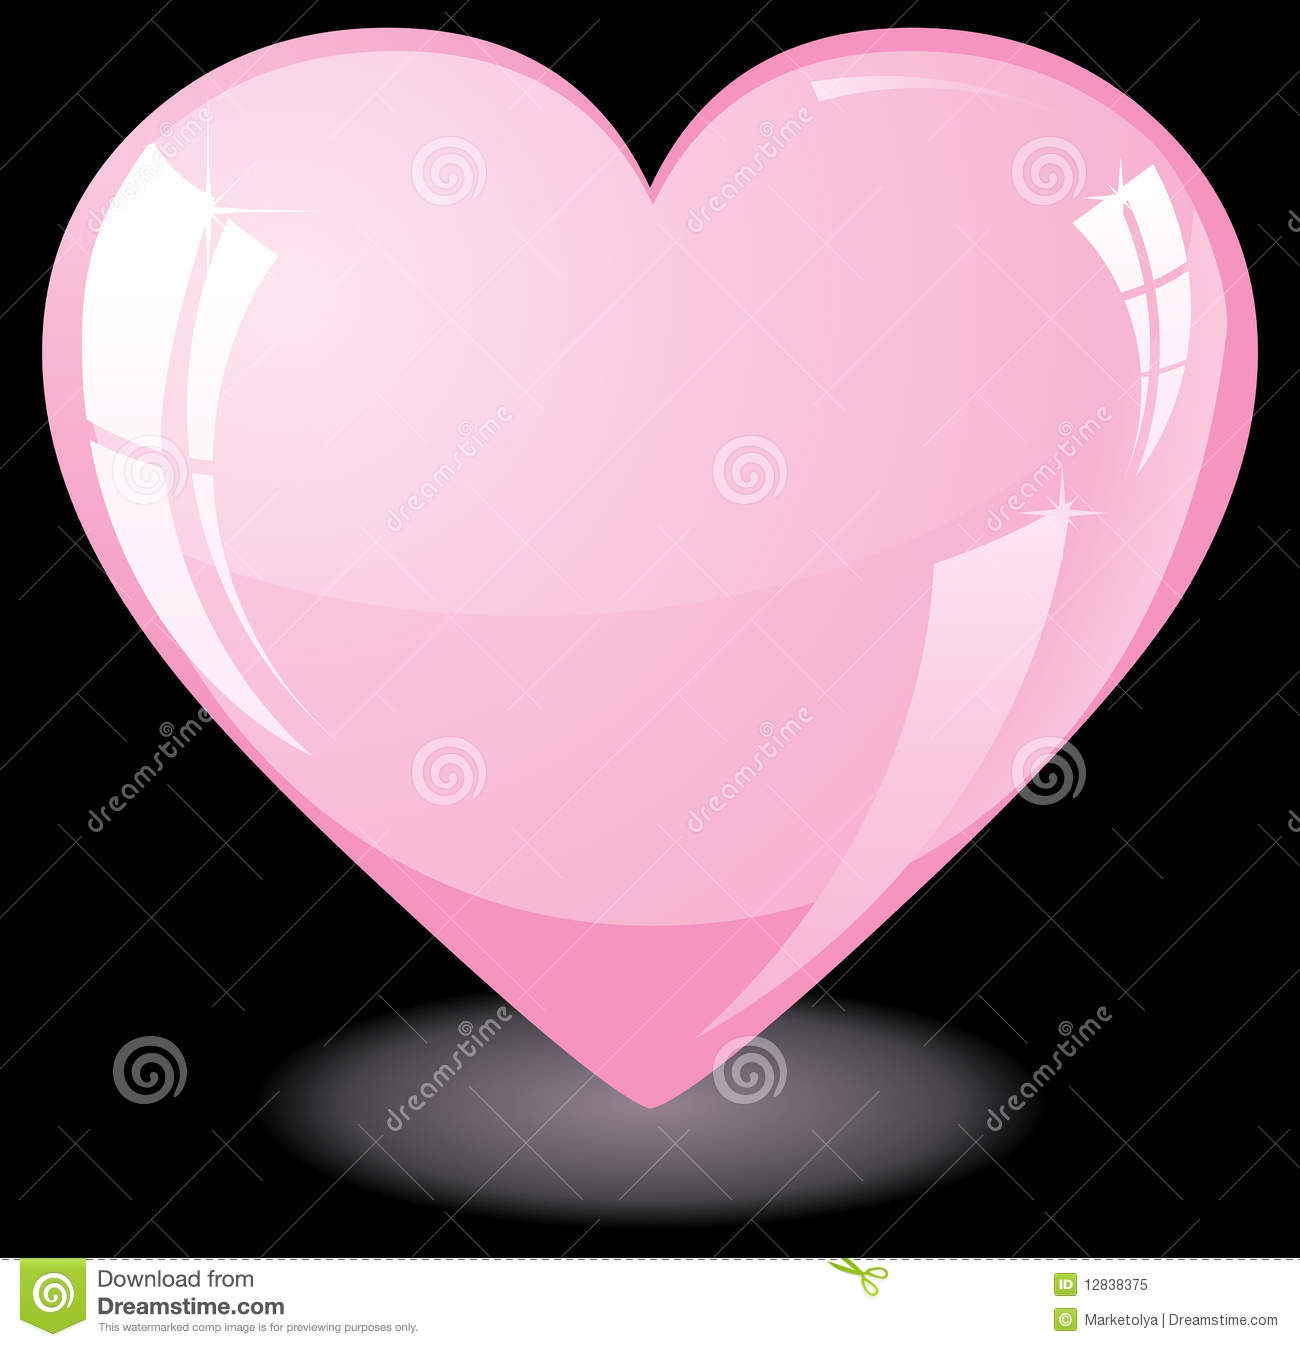 Pink Heart On Black Background Royalty Stock Photo   Image 1300x1347